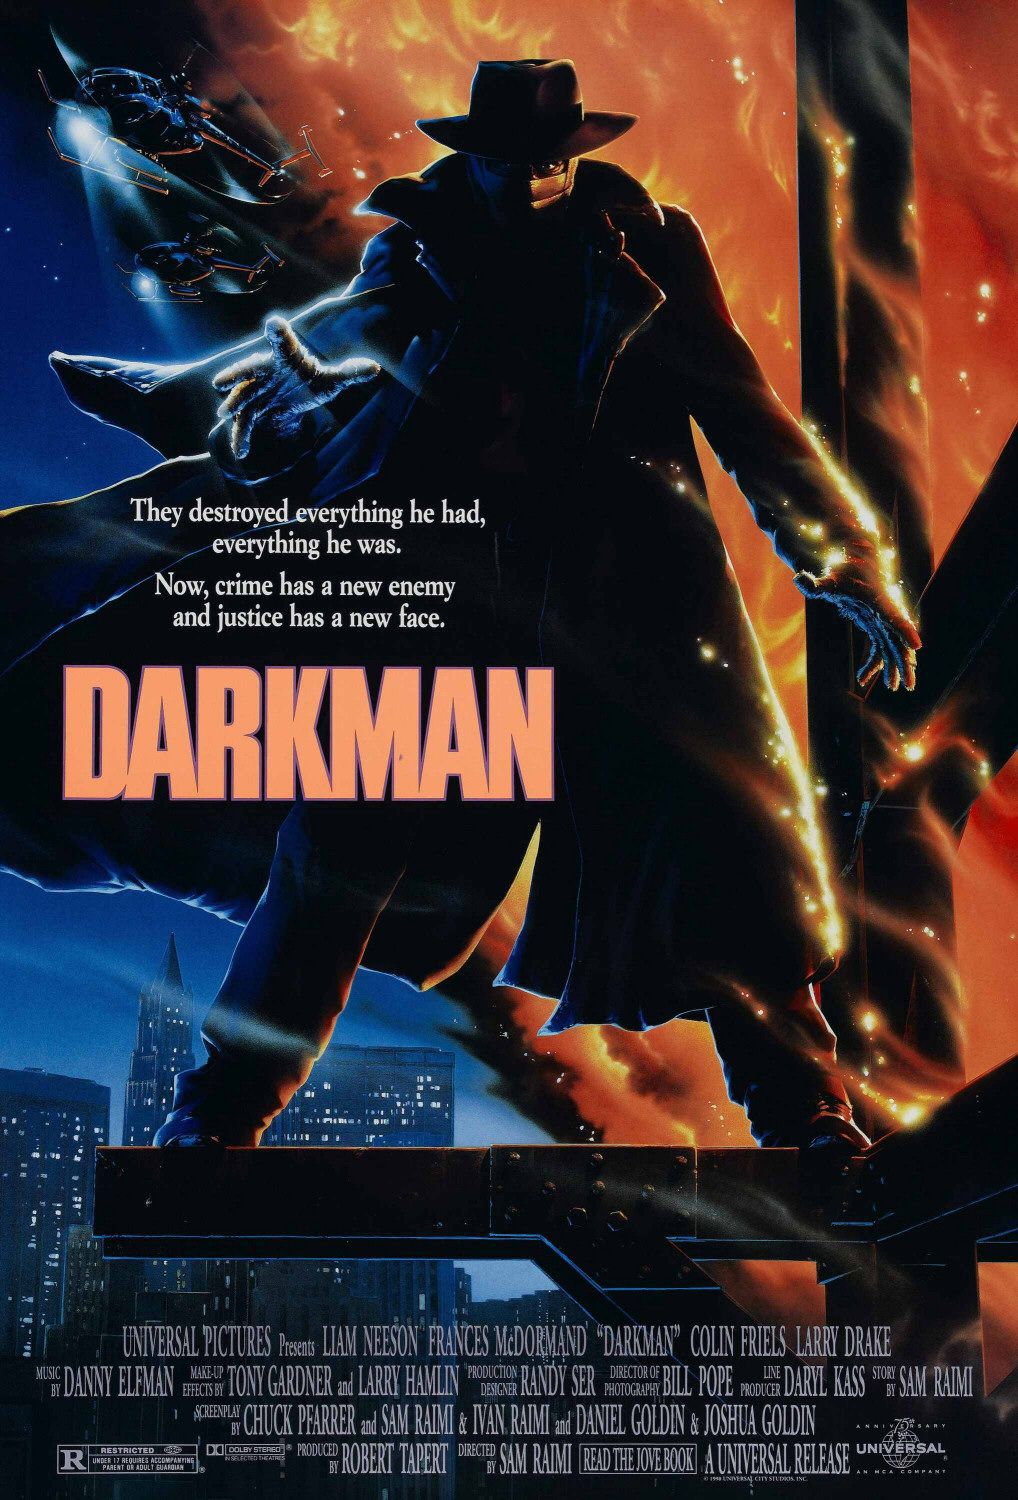 Darkman (1990) - Directed by: Sam RaimiStarring: Liam Neeson, Frances McDormand, Colin Friels, Larry Drake, Bruce CampbellRated: RRunning Time: 1 h 36 mTMM Score: 3.5 stars out of 5STRENGTHS: Directing, Tone, Writing, Original CharacterWEAKNESSES: Some Weaker Story Elements